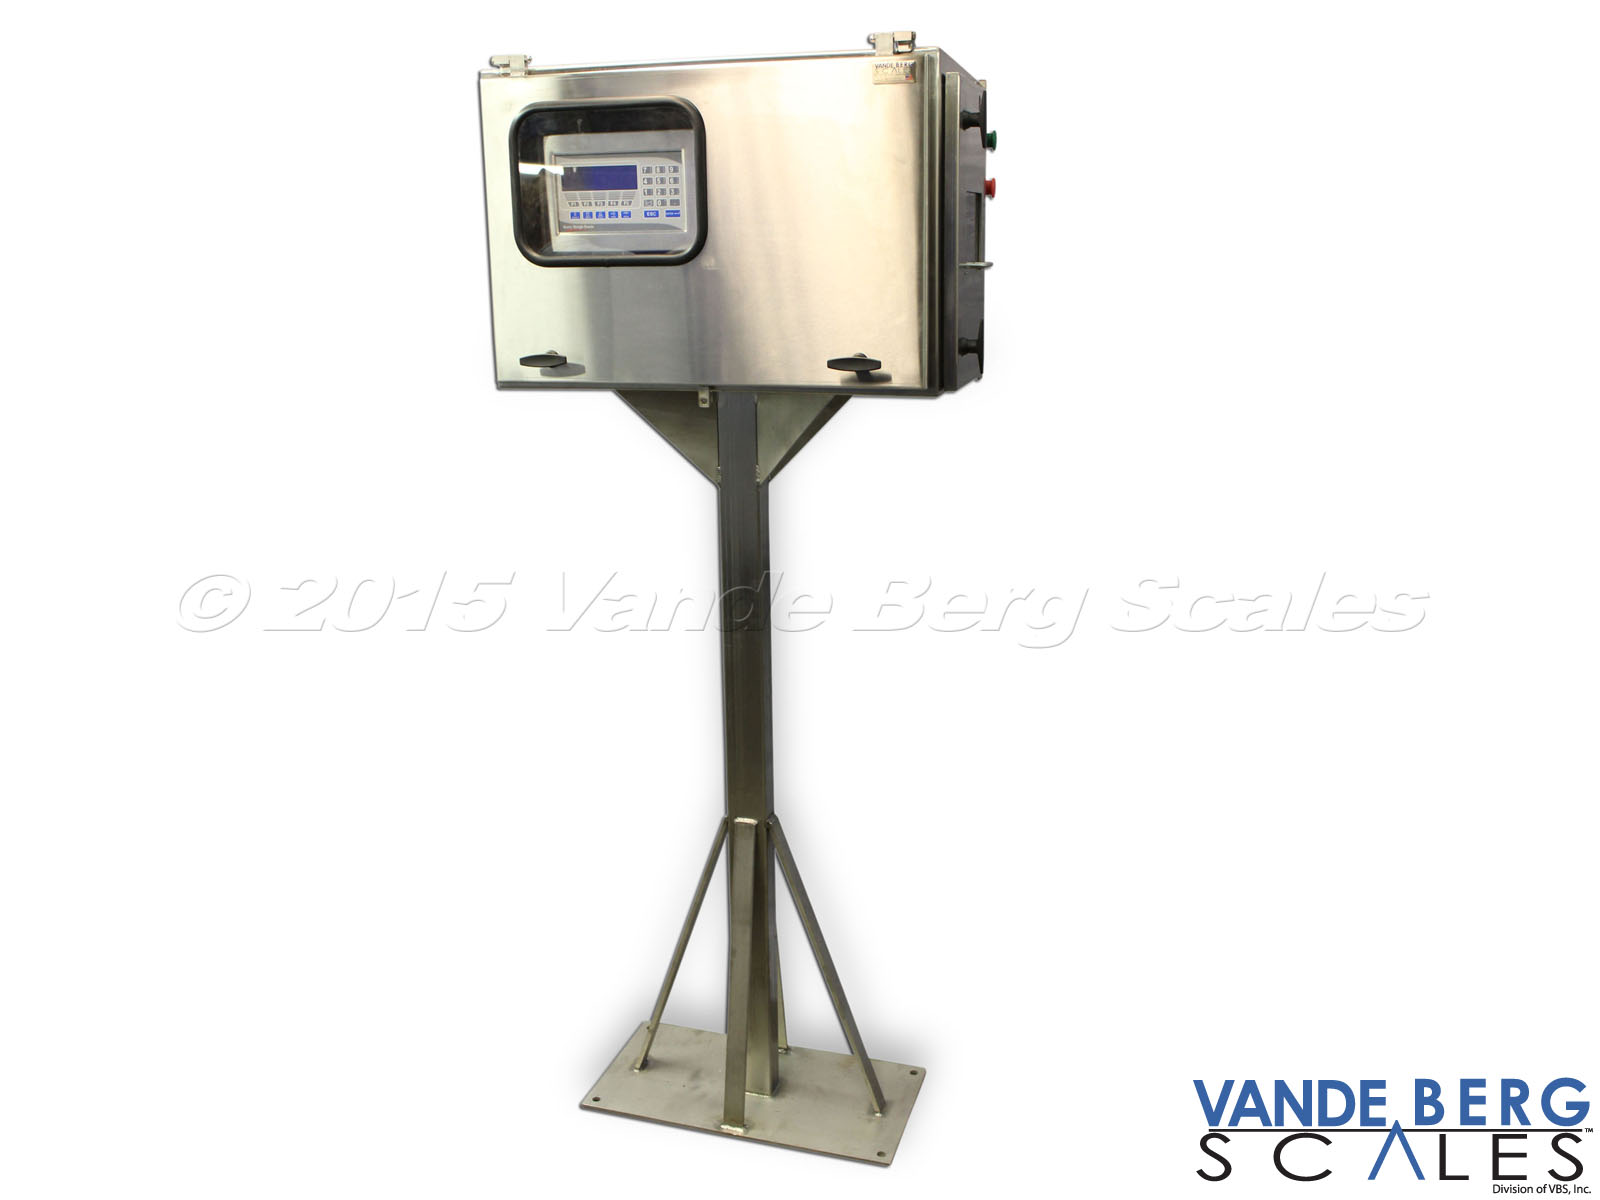 Stainless Steel stand supporting a printer kiosk using an environmentally rated enclosure.